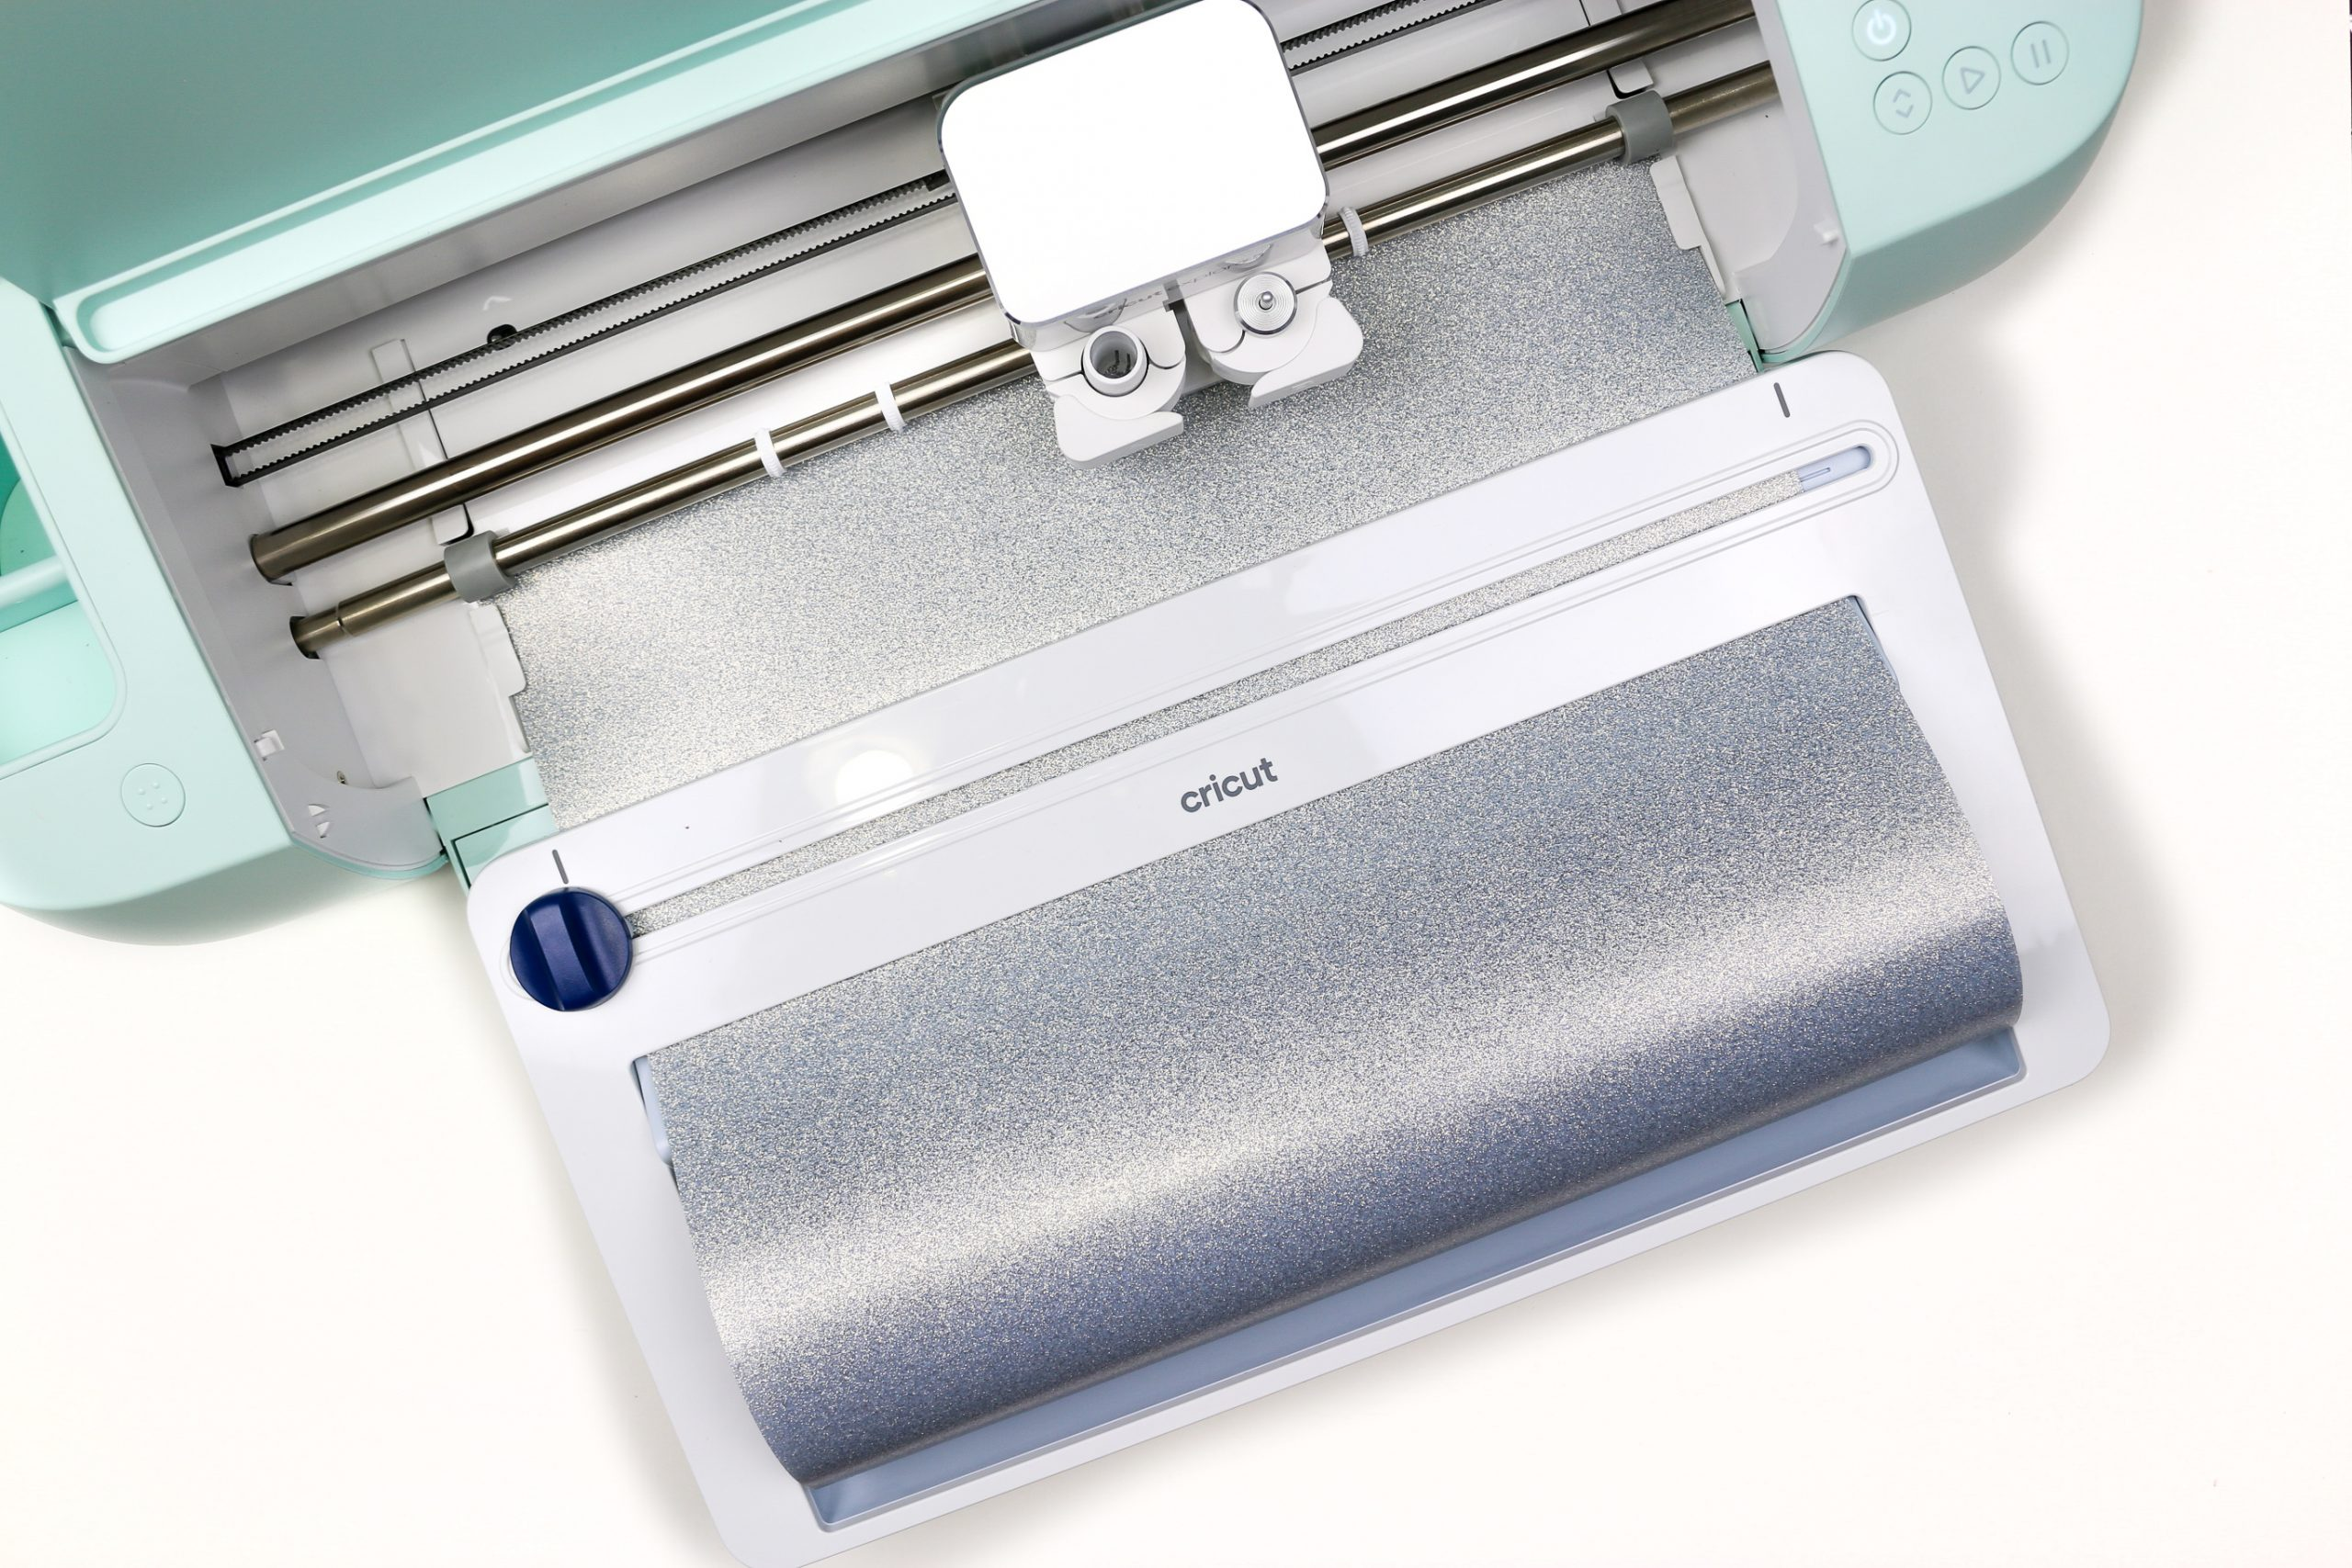 Cricut Explore 3 and roll holder with silver vinyl